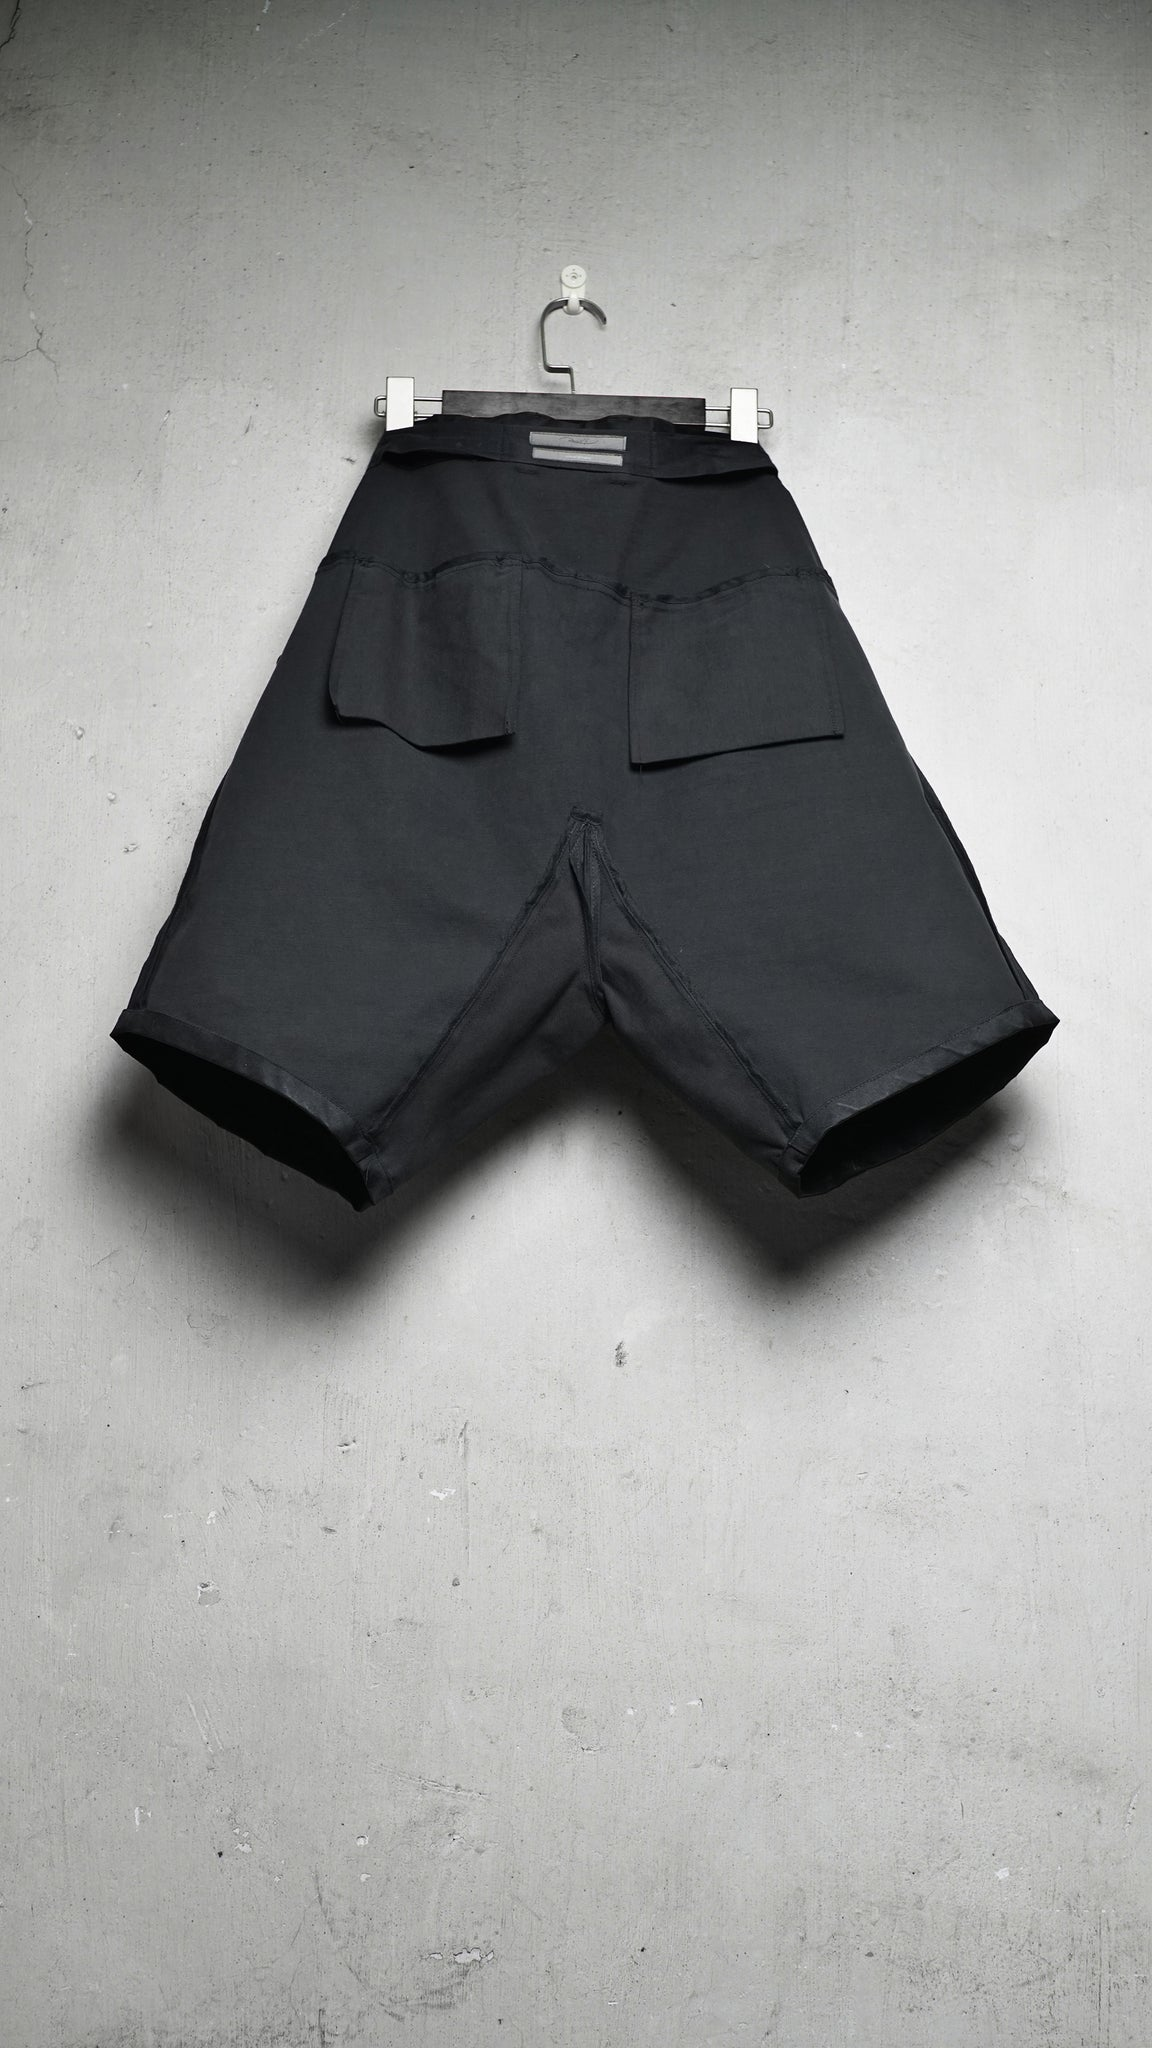 Hand waxed 6 pockets Drop Crotch Shorts